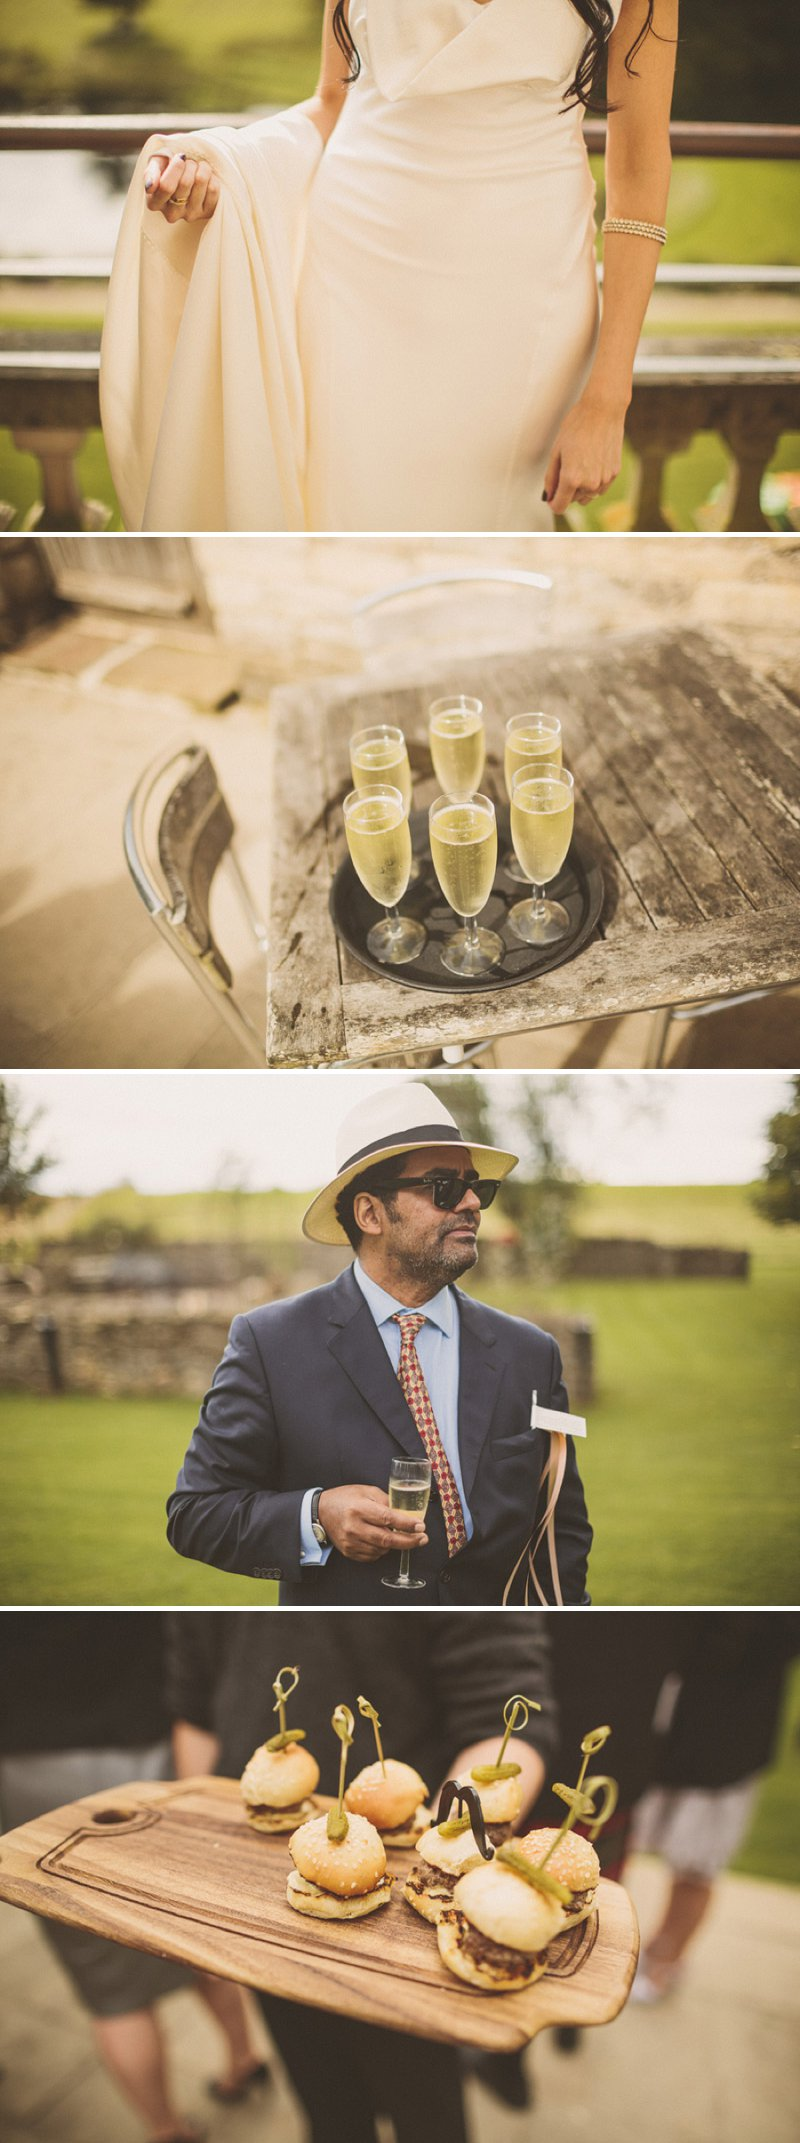 Cripps Barn Wedding Venue Cotswold Countryside Wedding Inspiration